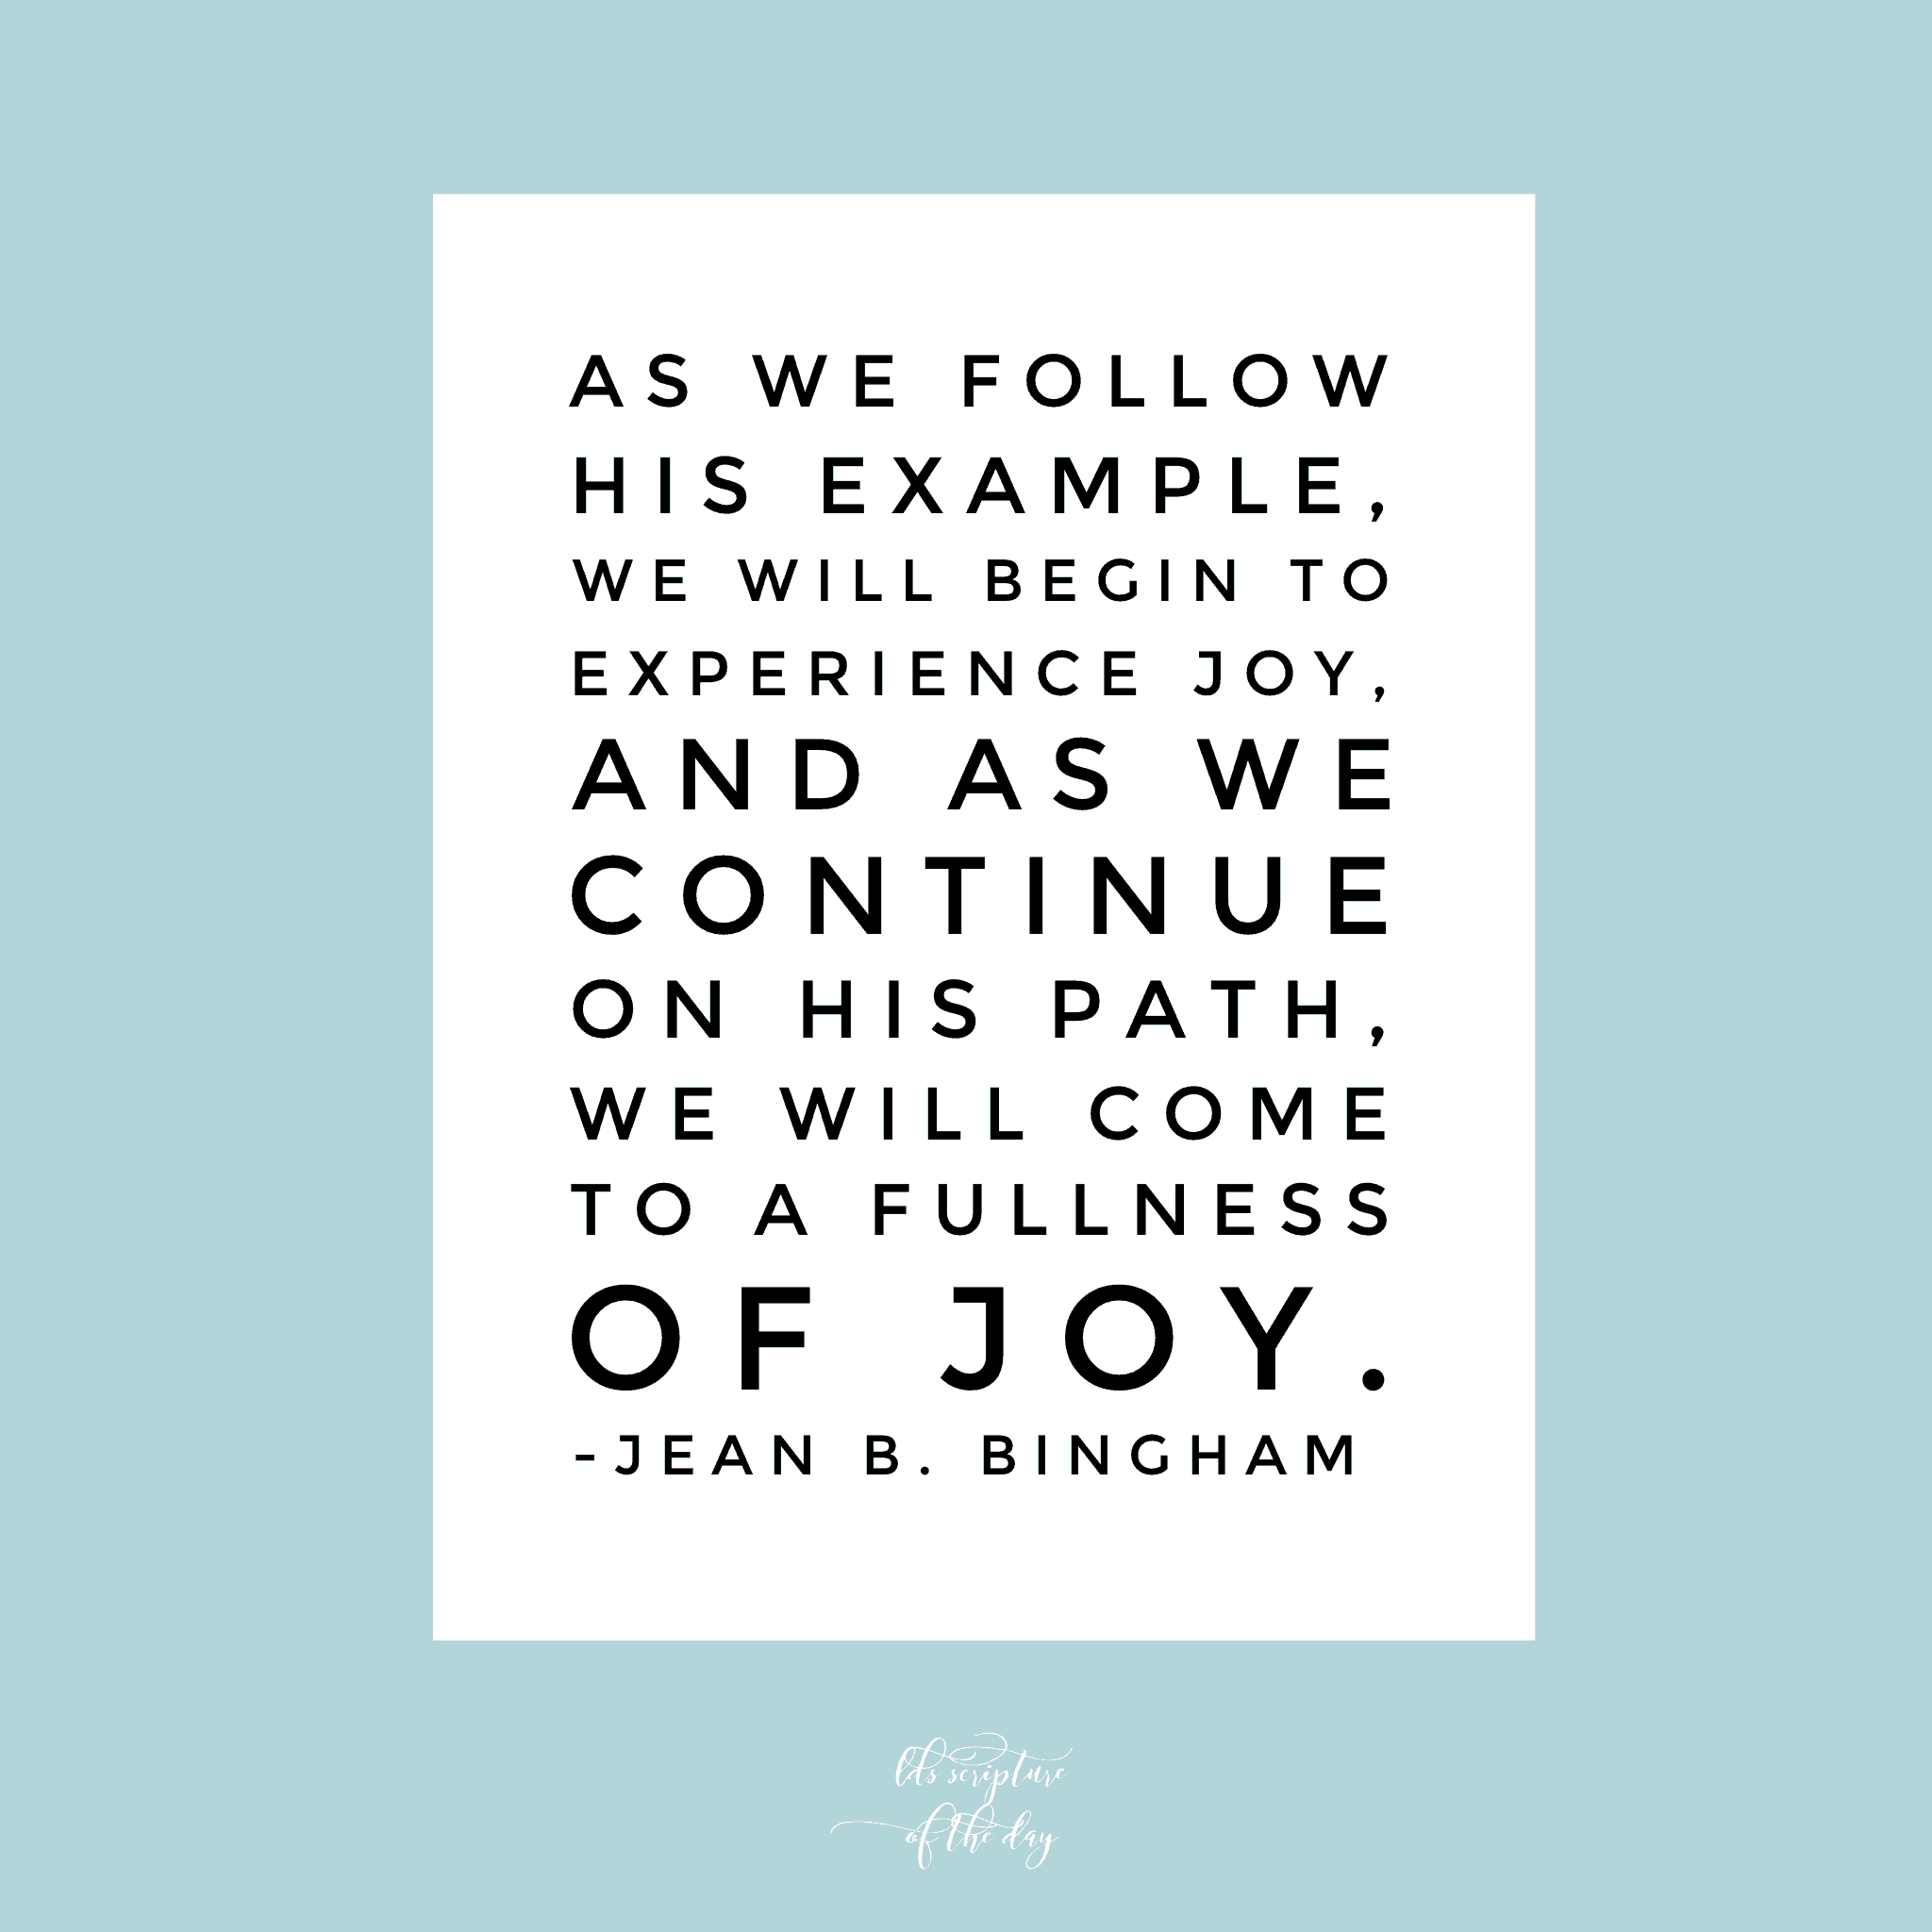 As we follow His example, we will begin to experience joy, and as we continue on His path, we will come to a fulness of joy. —Jean B. Bingham